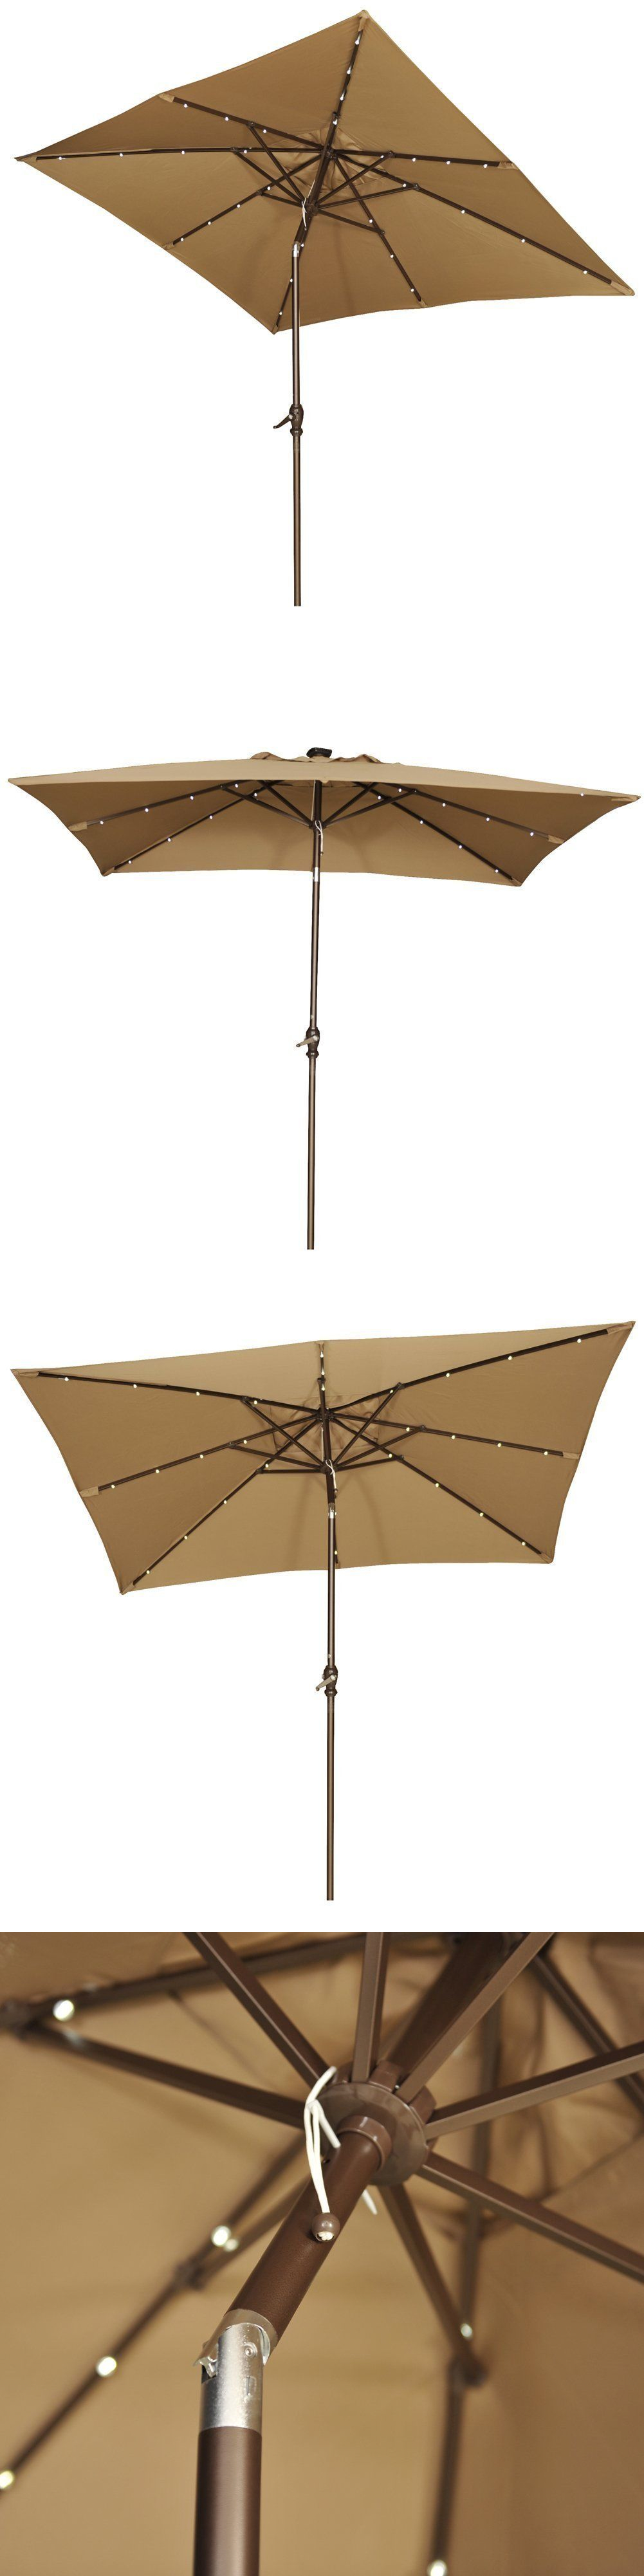 Rectangular Patio Umbrella With Solar Lights Captivating Umbrellas 180998 7X9 Ft Rectangular Patio Umbrella W Solar Powered Decorating Design